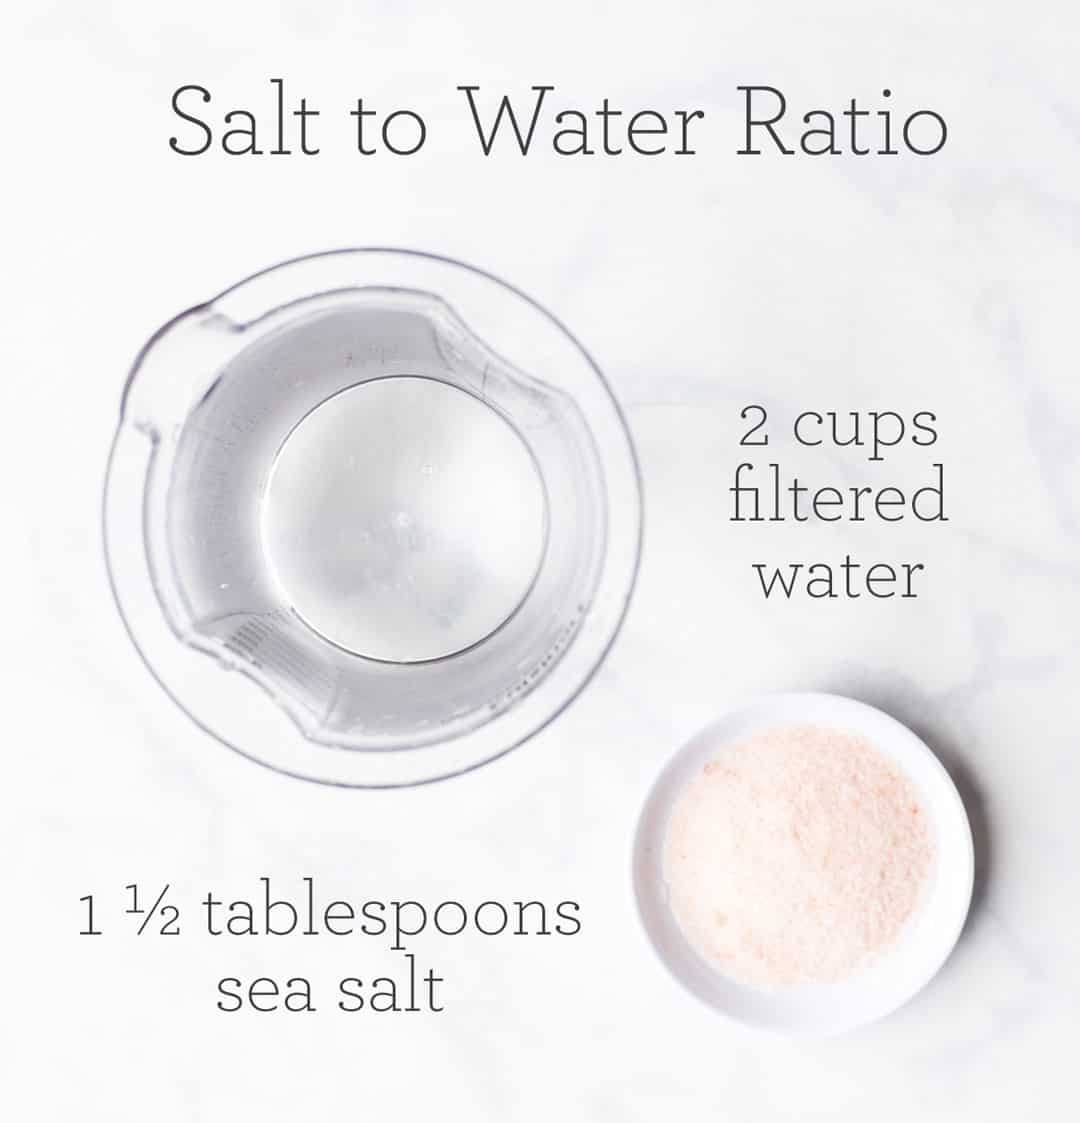 Image with text showing ratio of water to salt to make fermented pickles